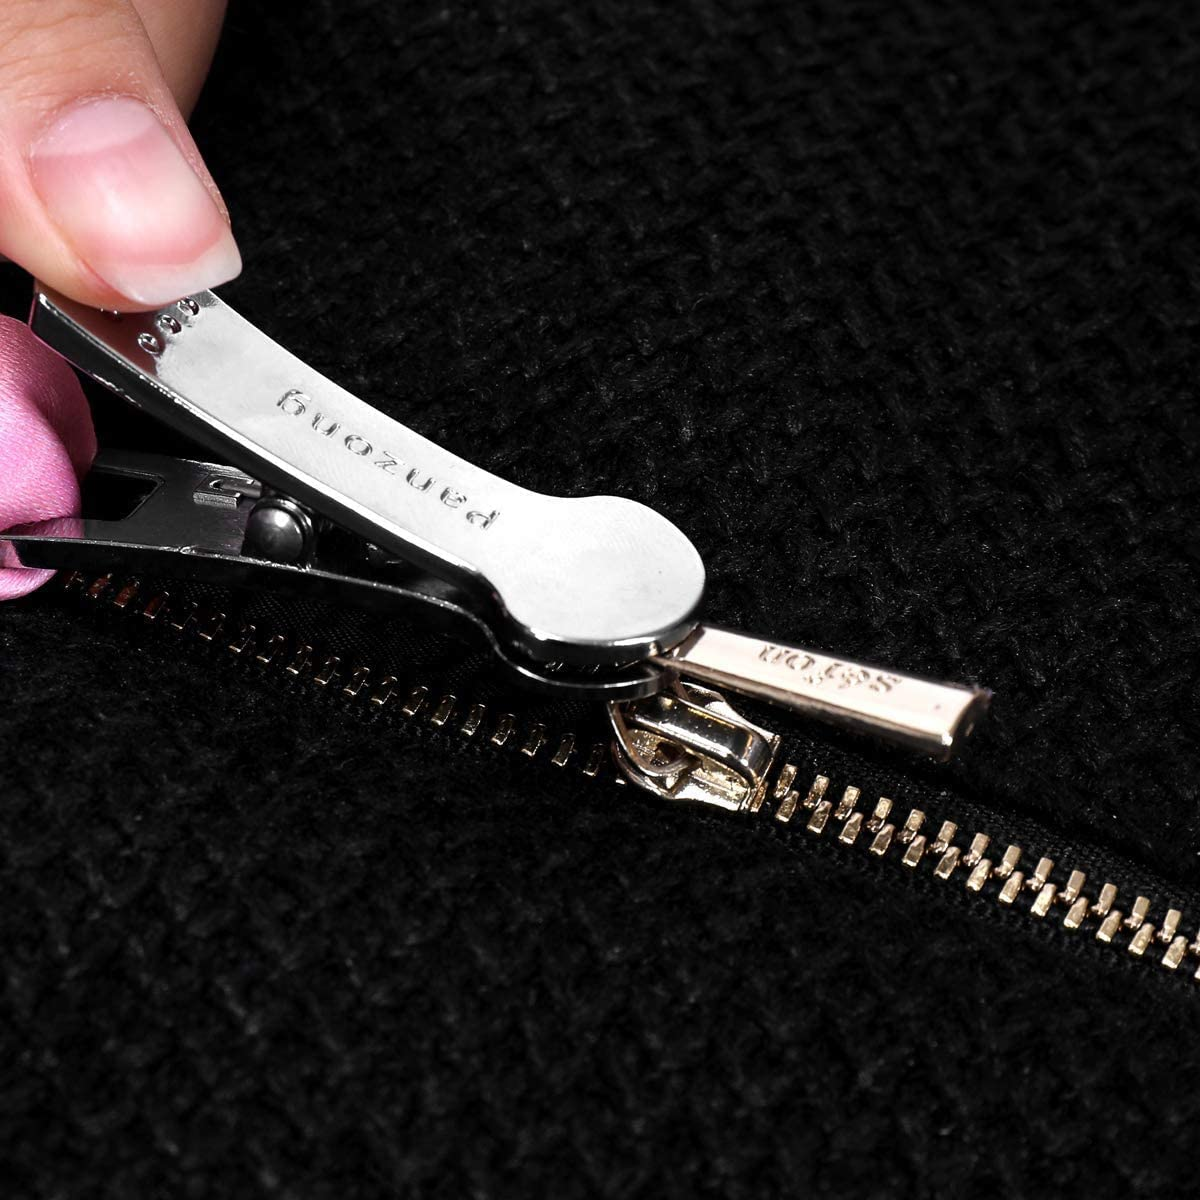 Unique Mushroom Head Design Works on Multiple Zipper Types Pink Lanyard Zip up Dress and Boots by Yourself Premium Zipper Puller Dress Zipper Helper Easy to use Zipper Assistant